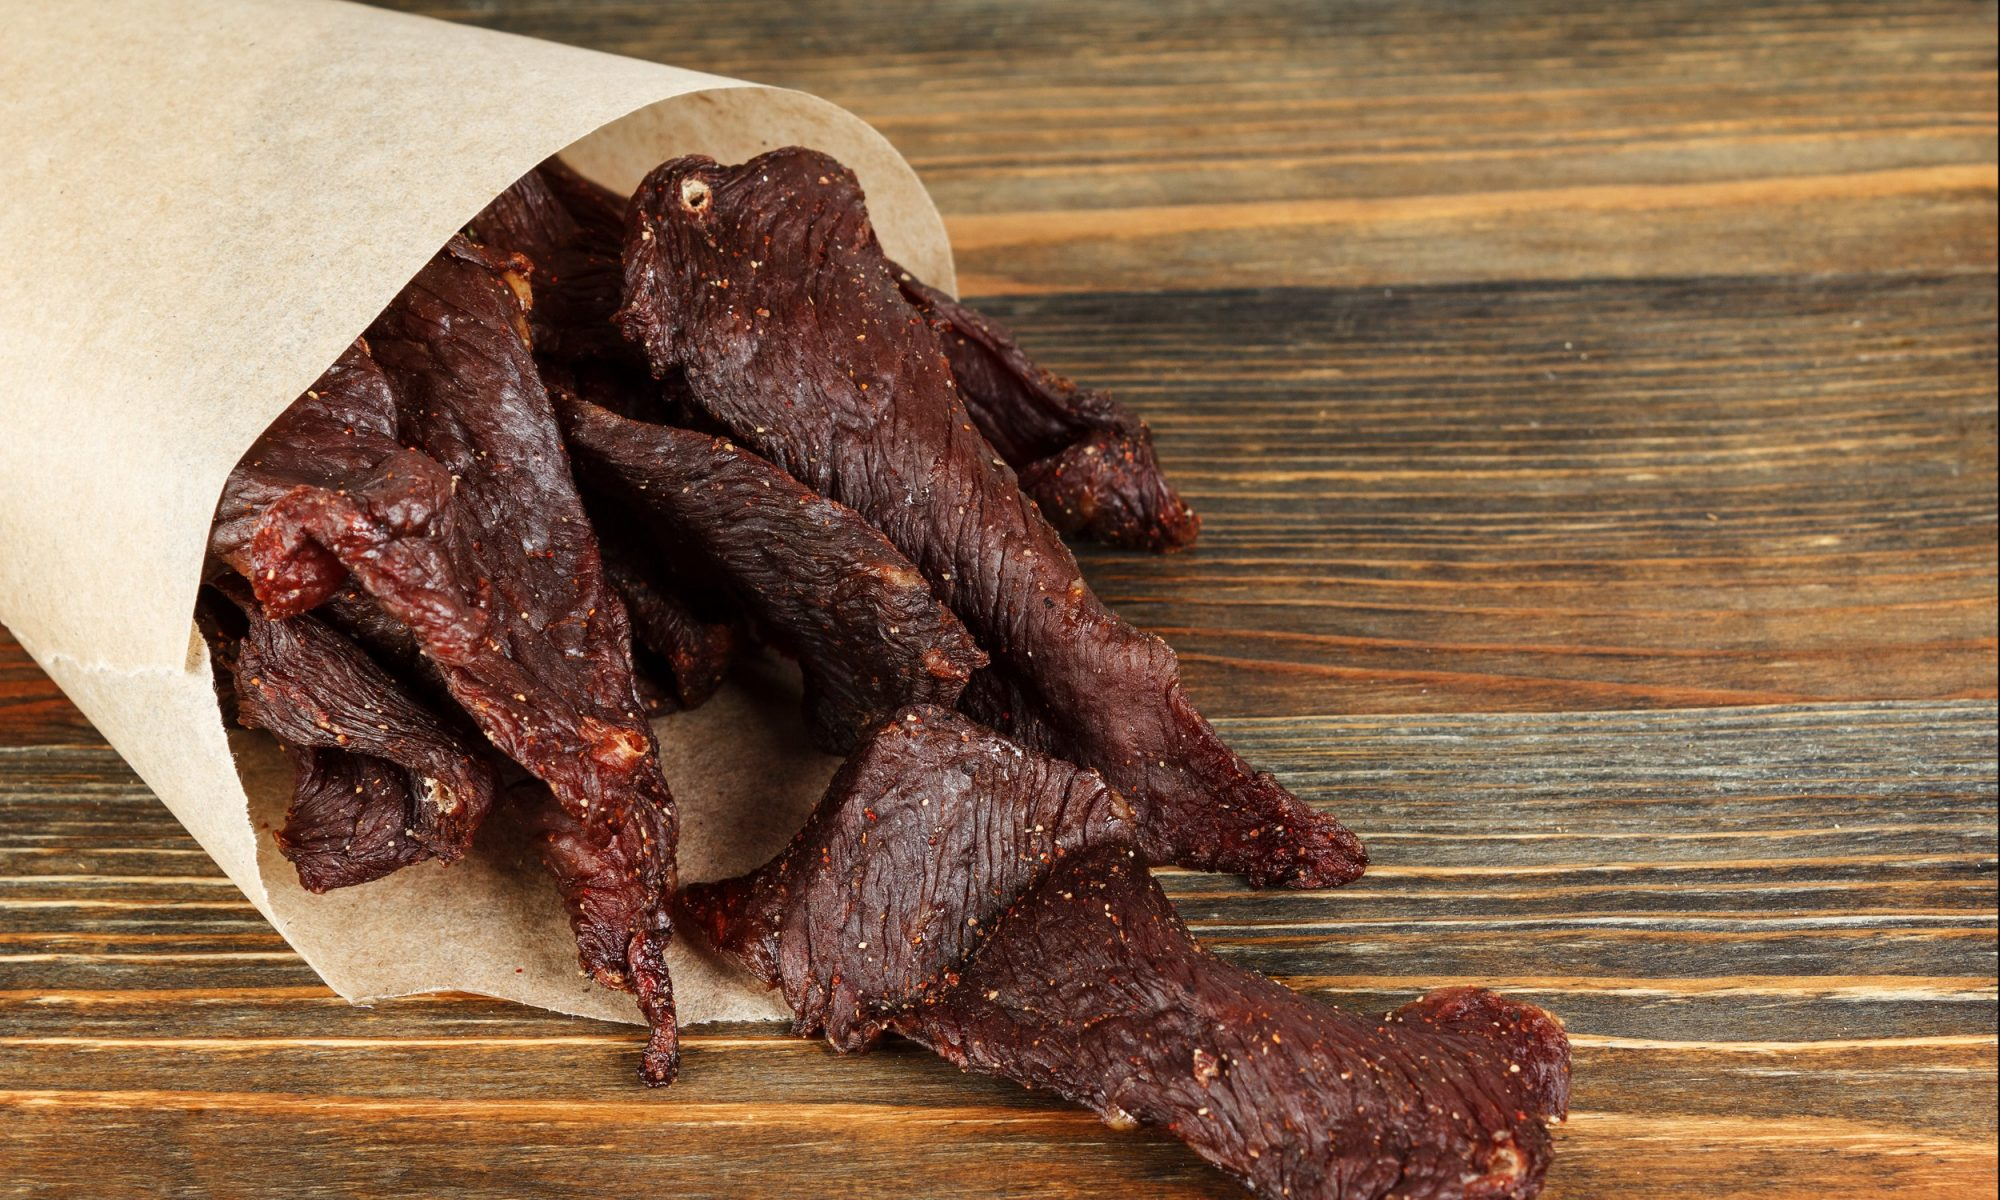 My Doctor Told Me I Have to Eat Jerky for Breakfast